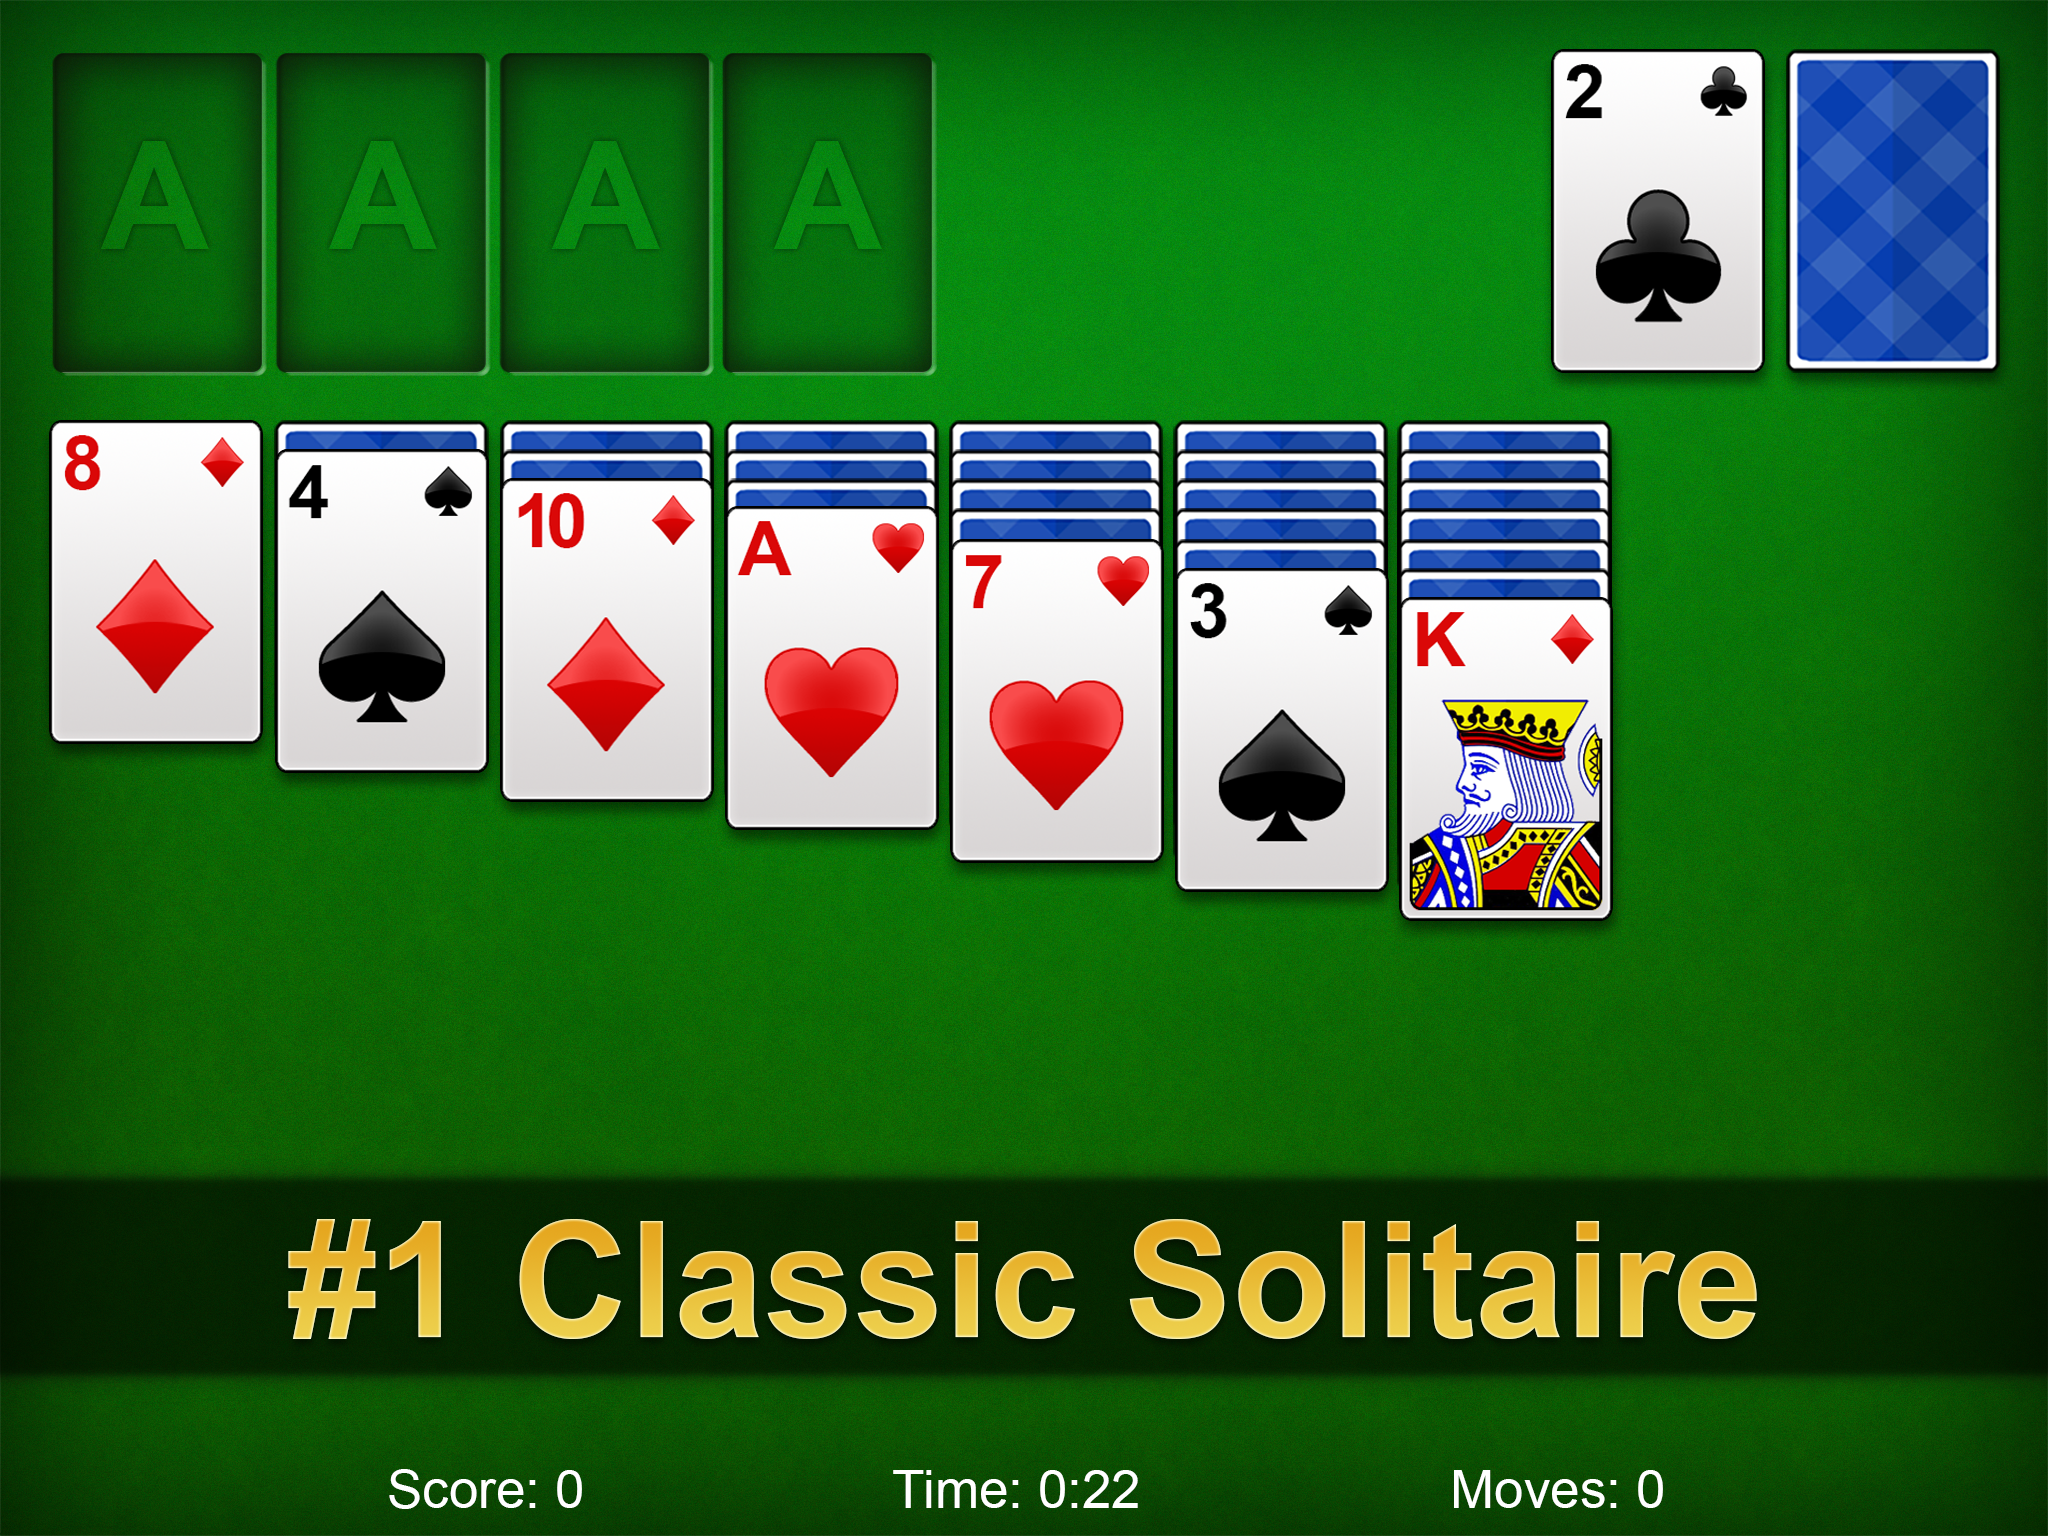 What are some popular solitaire card games?